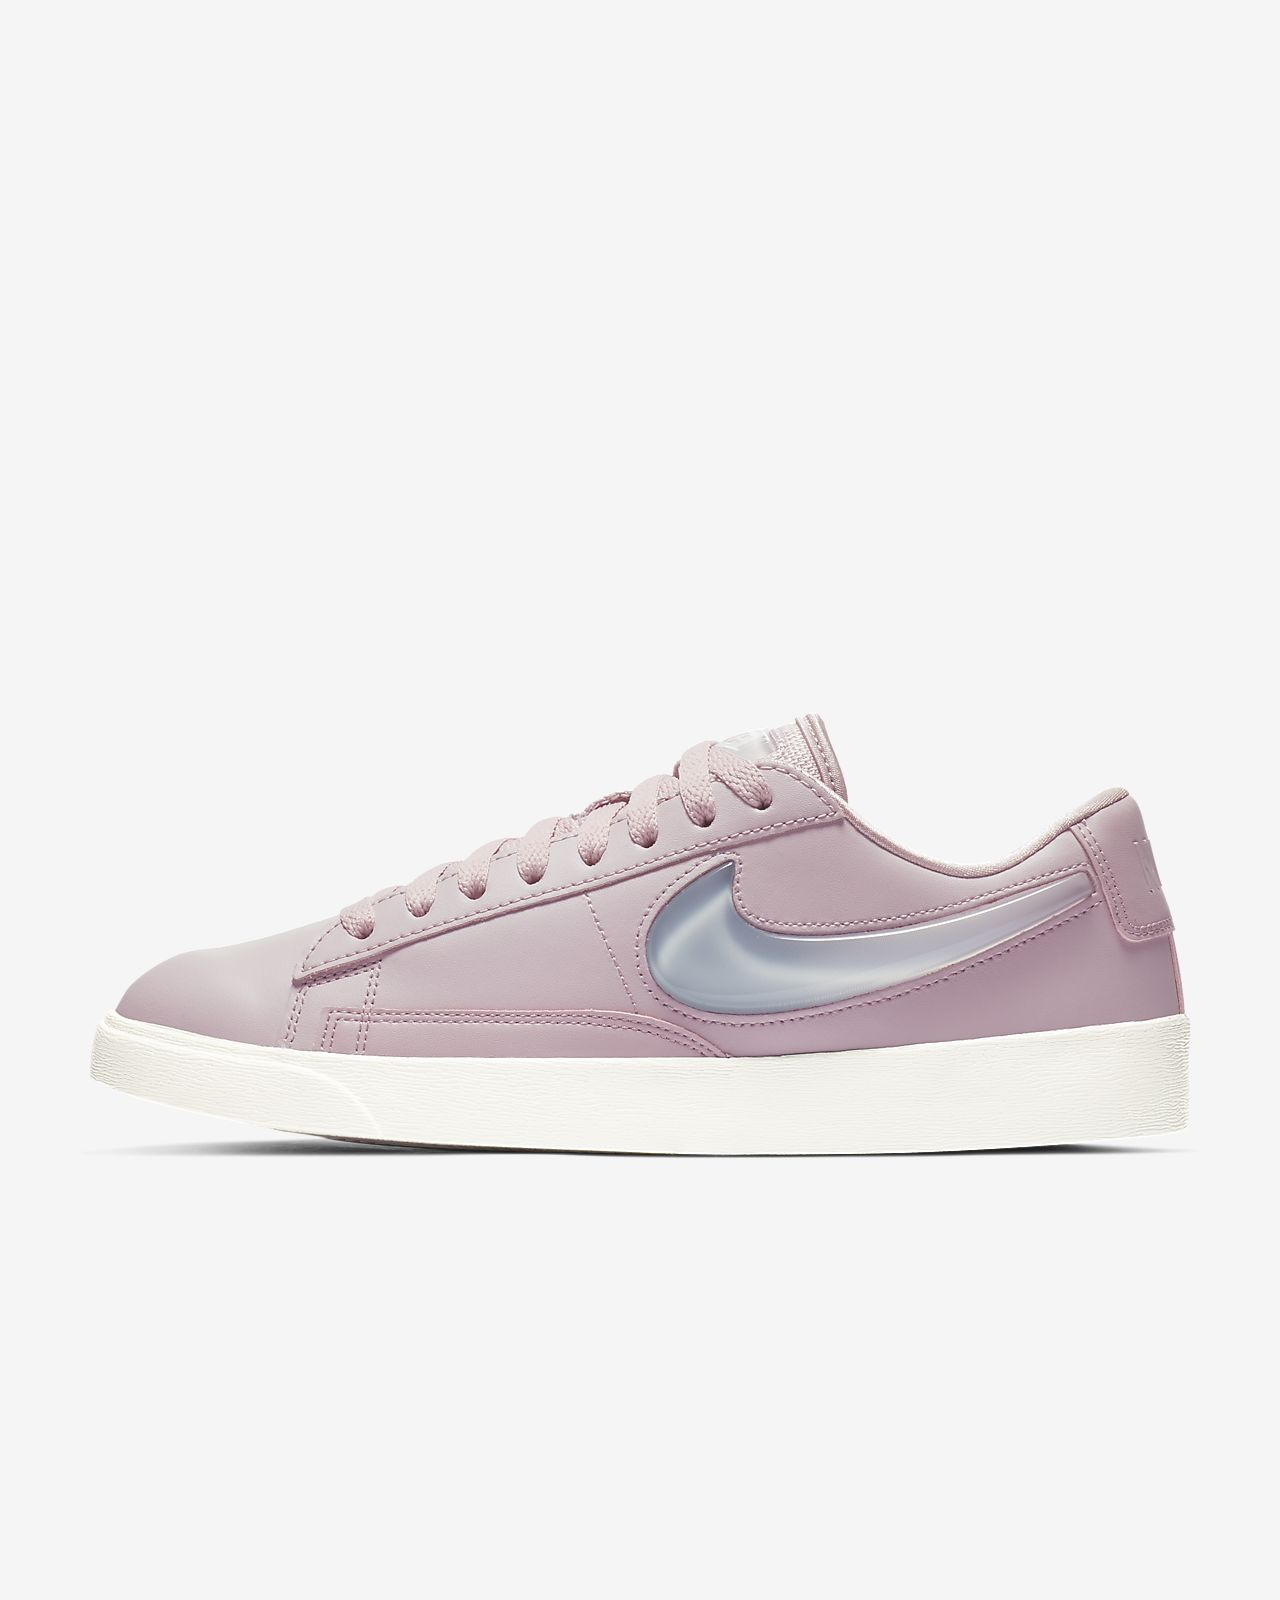 Nike Blazer Low Lux Premium Women's Shoe